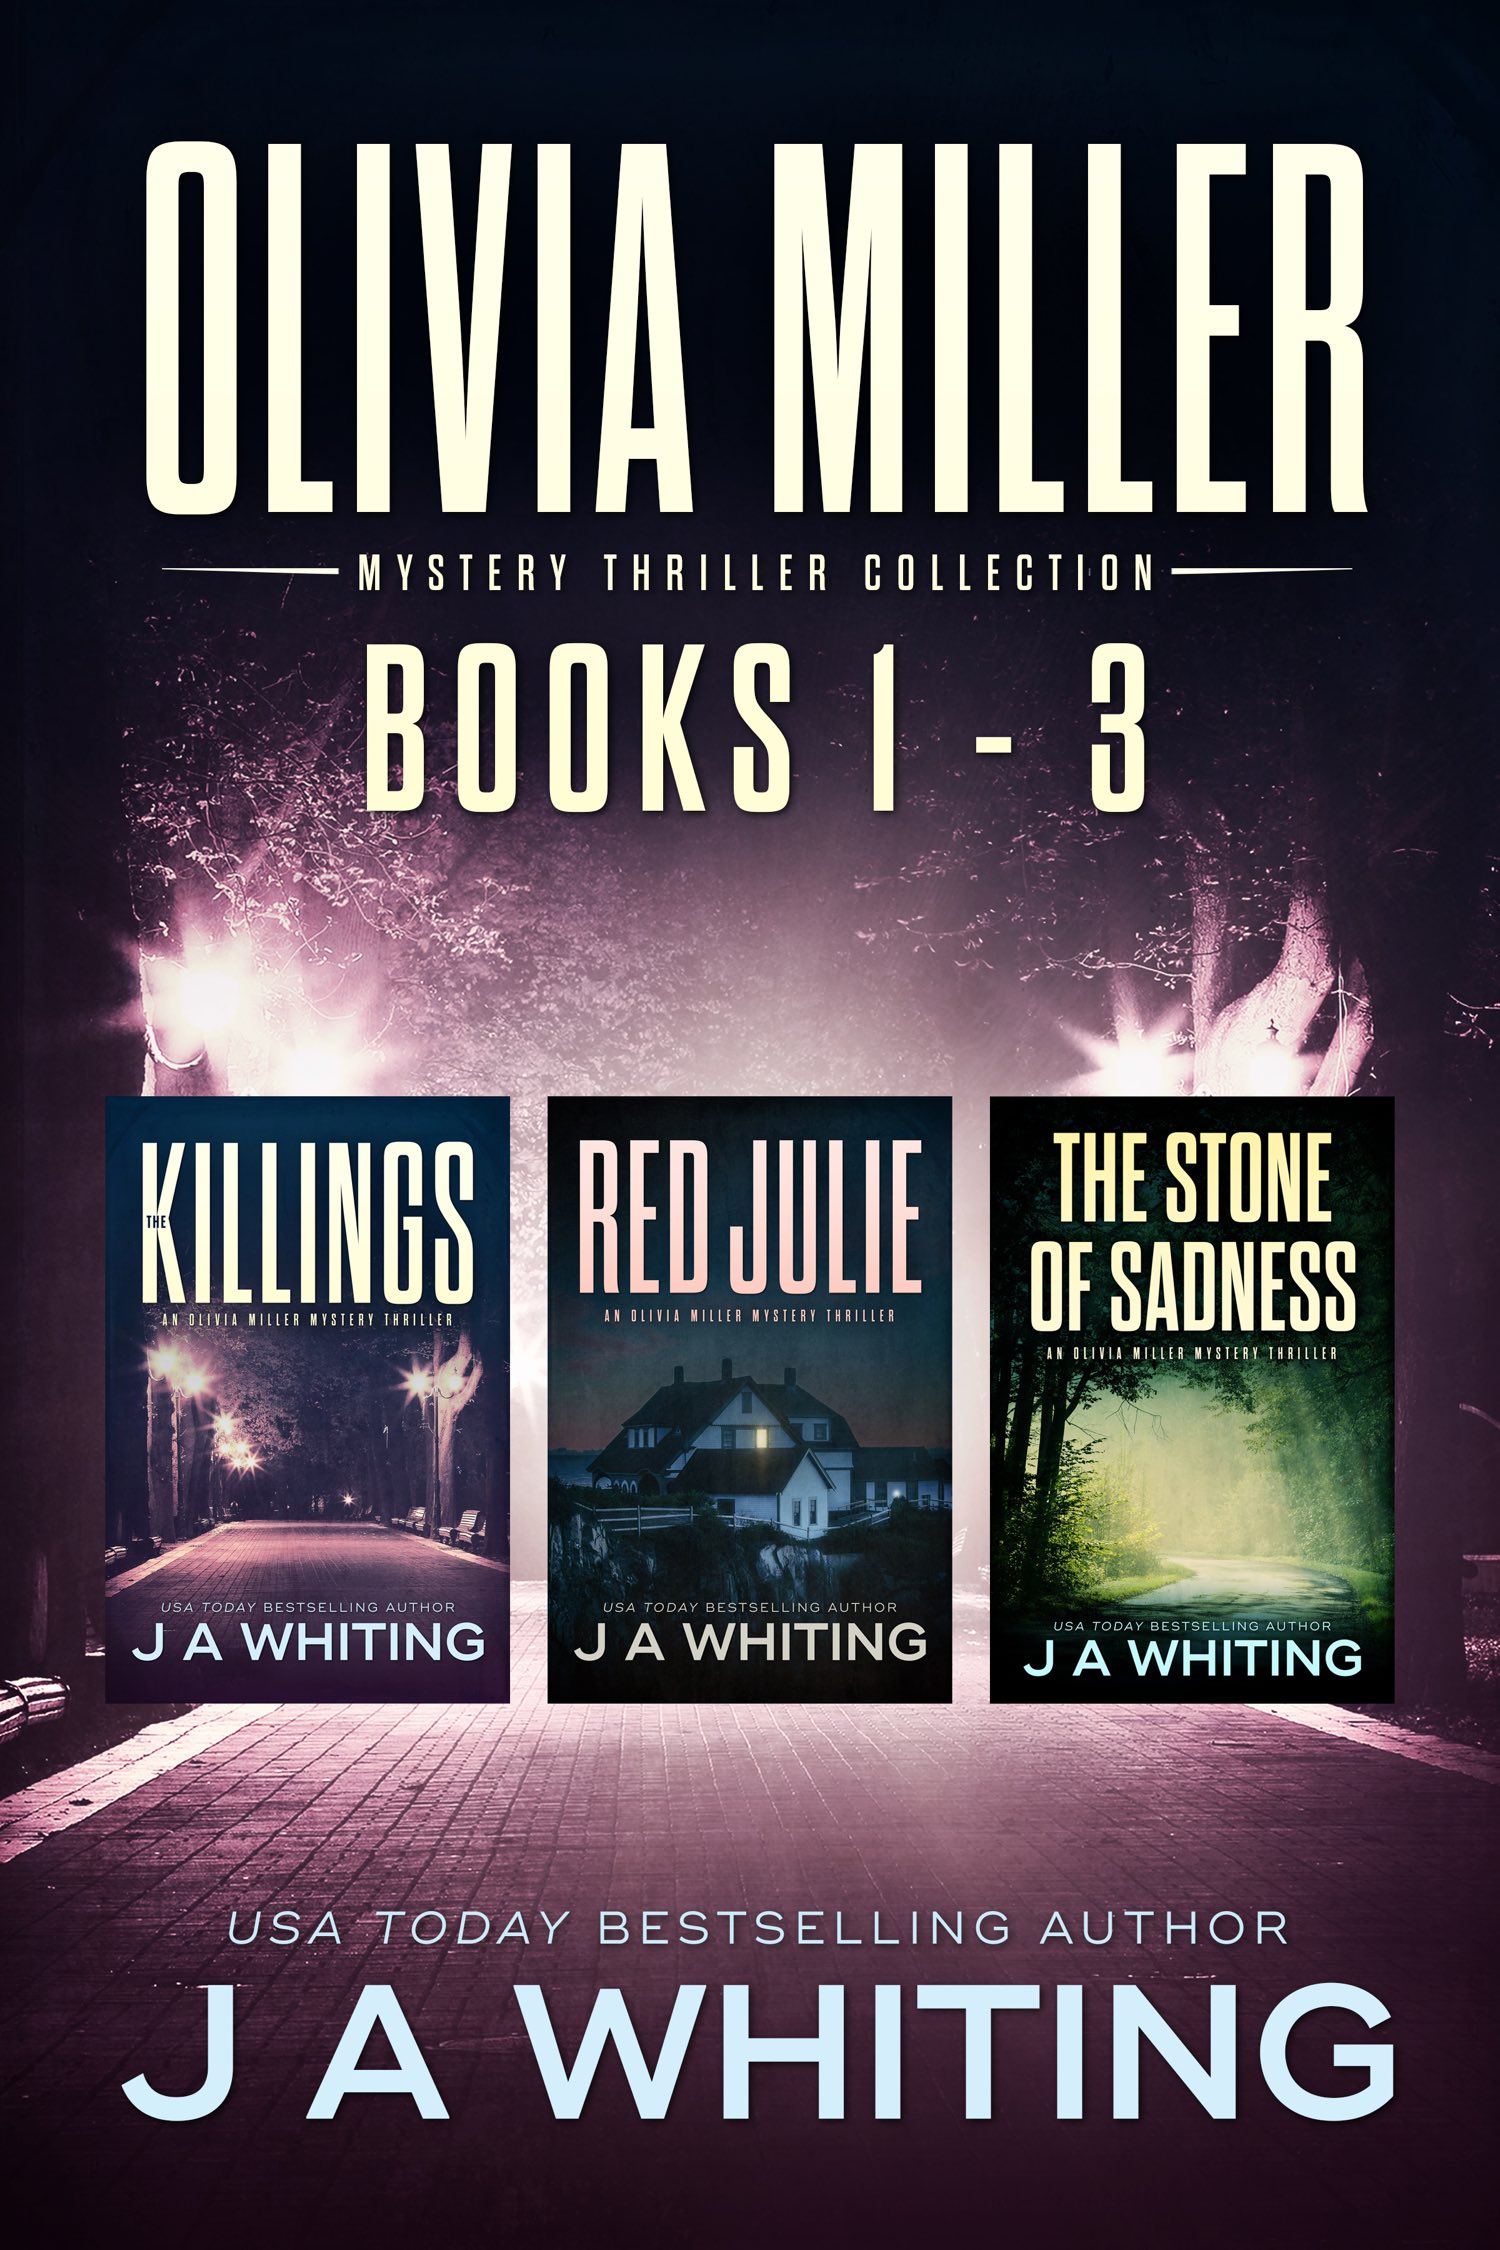 jawhiting-olivia-miller-box-set.jpg